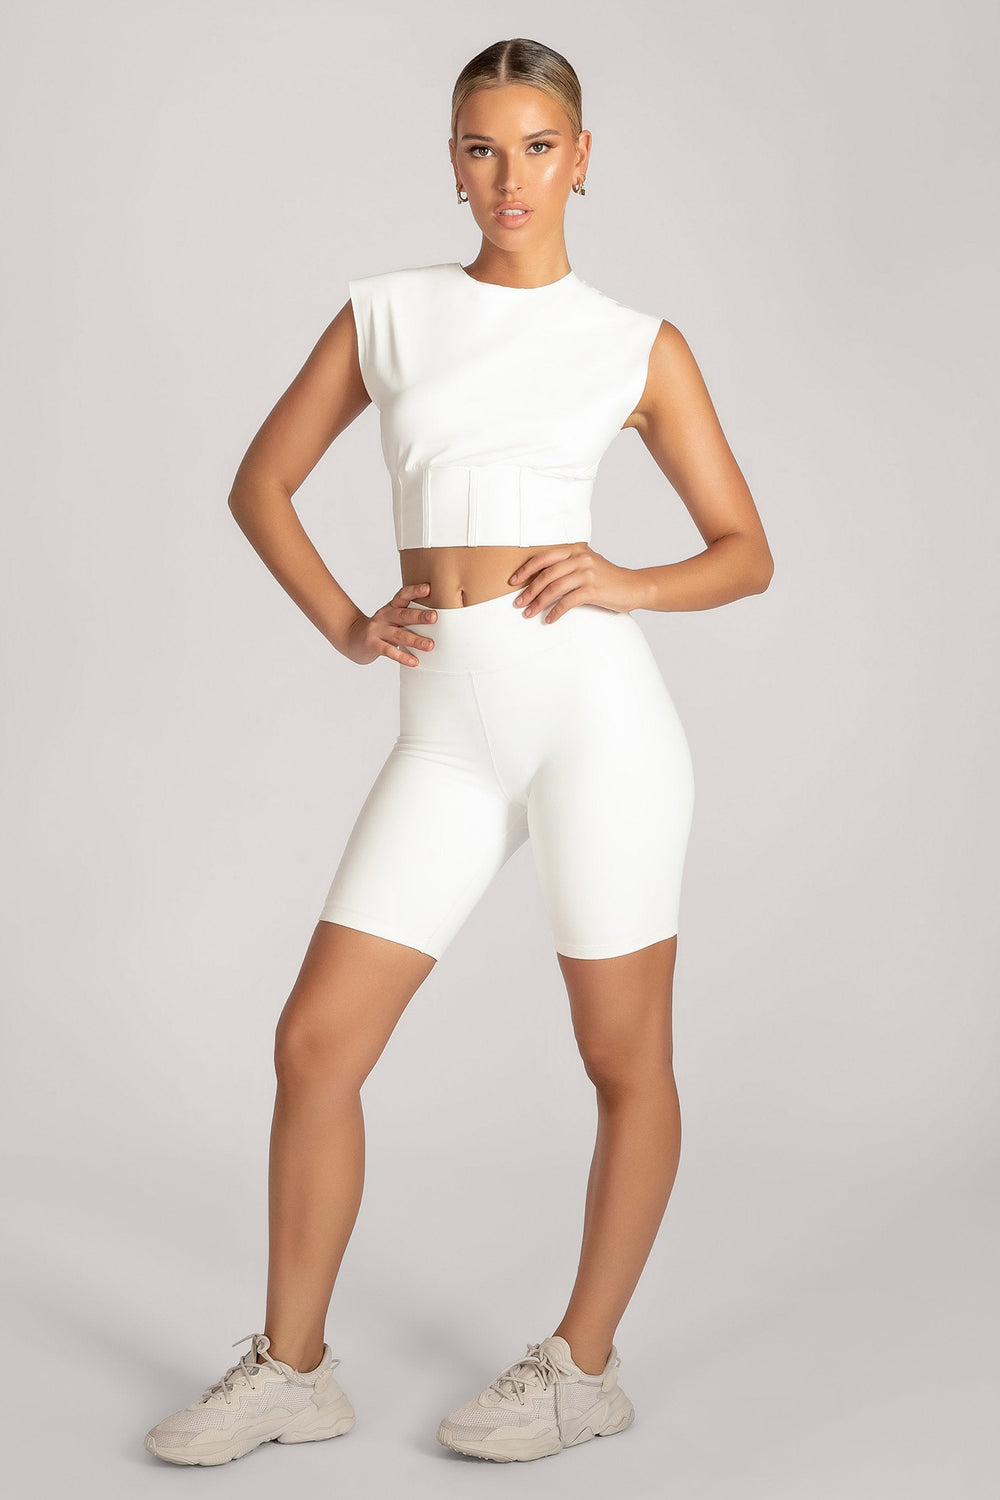 Hestia Panelled Sleeveless Crop Top - White - MESHKI ?id=16083116752971